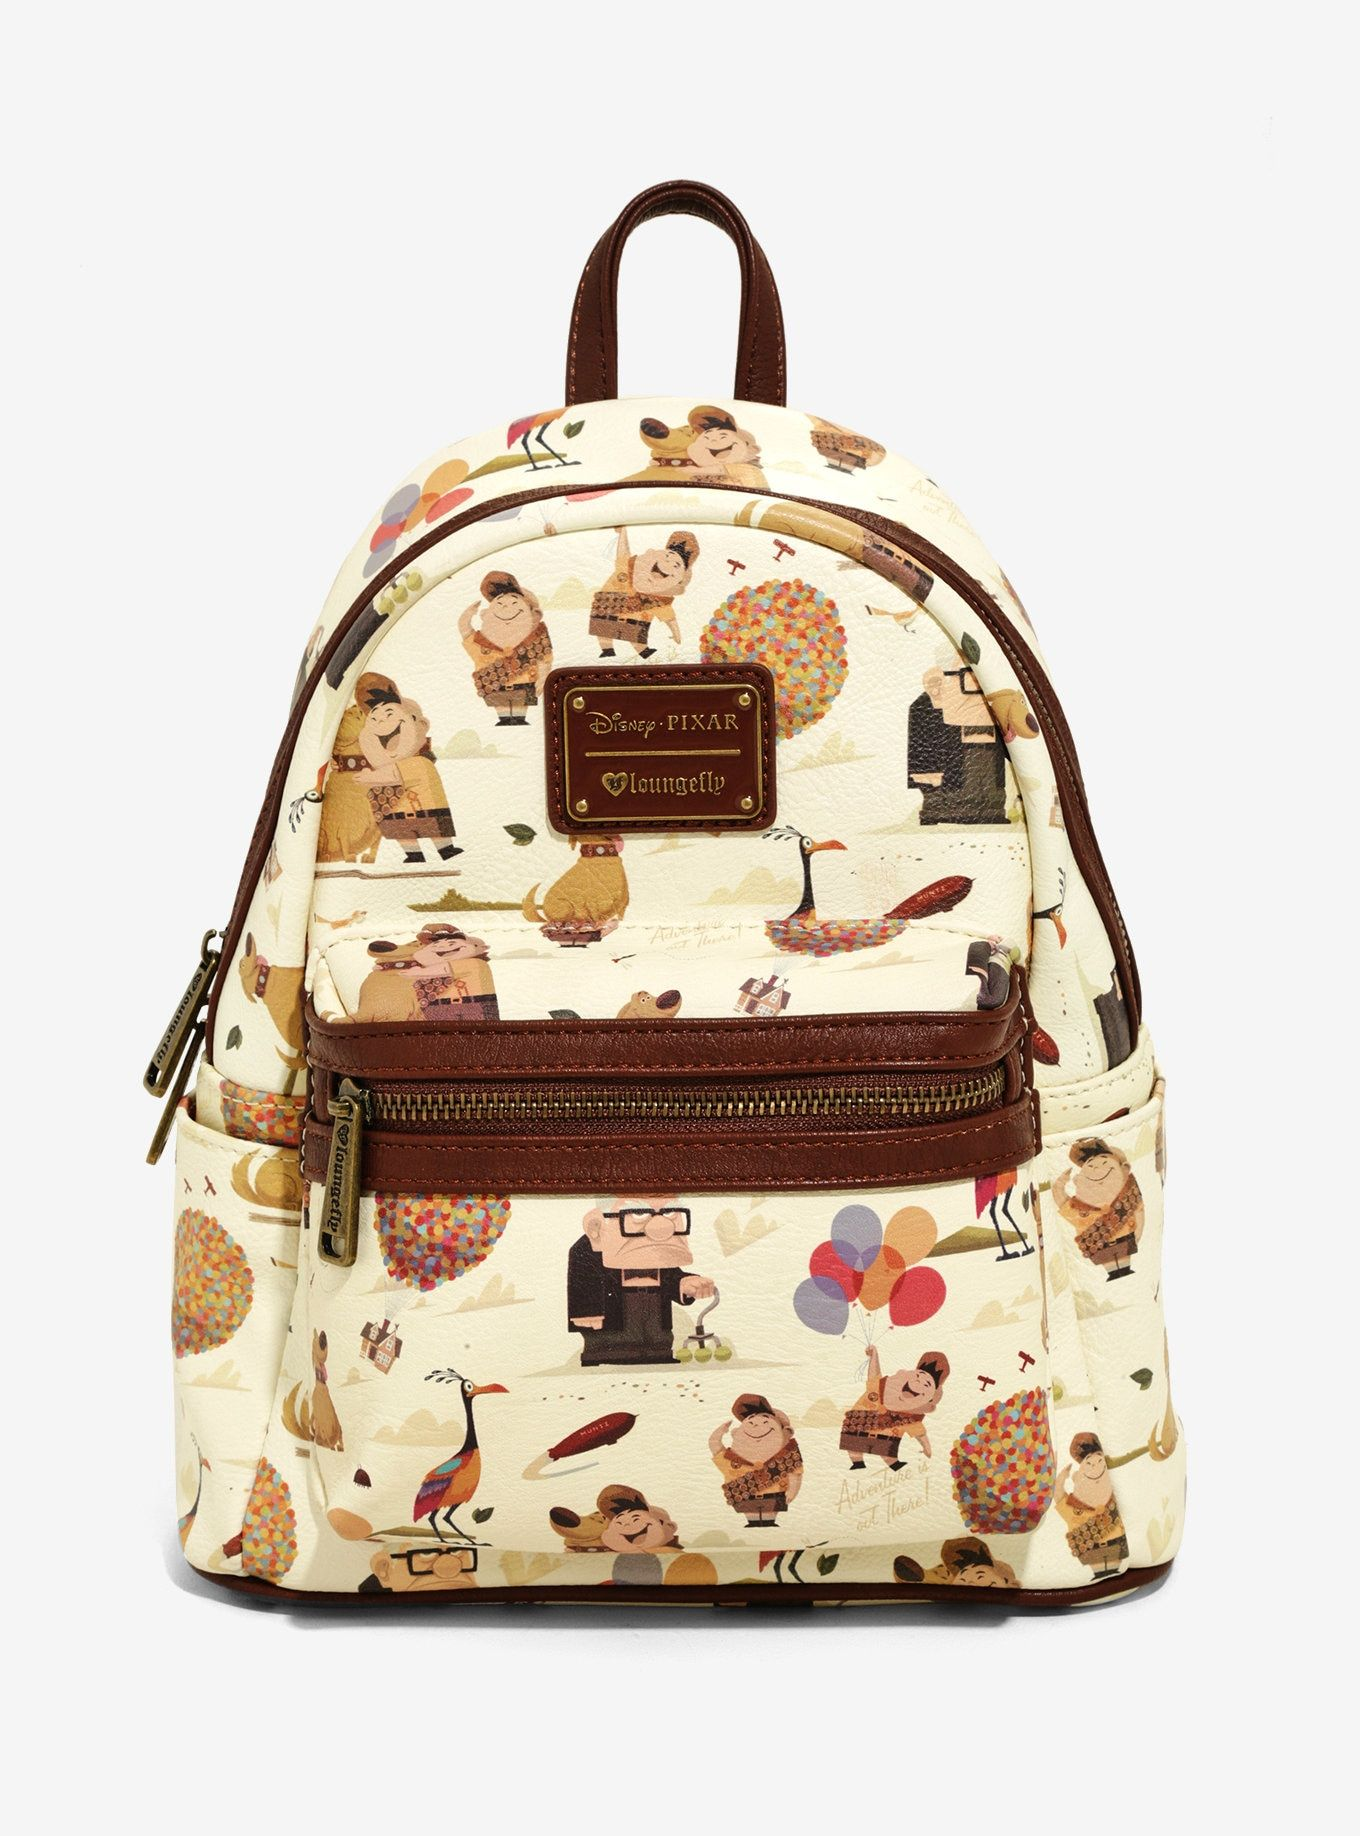 637519677b2 Loungefly Disney Pixar Up Mini Backpack - BoxLunch Exclusive ...